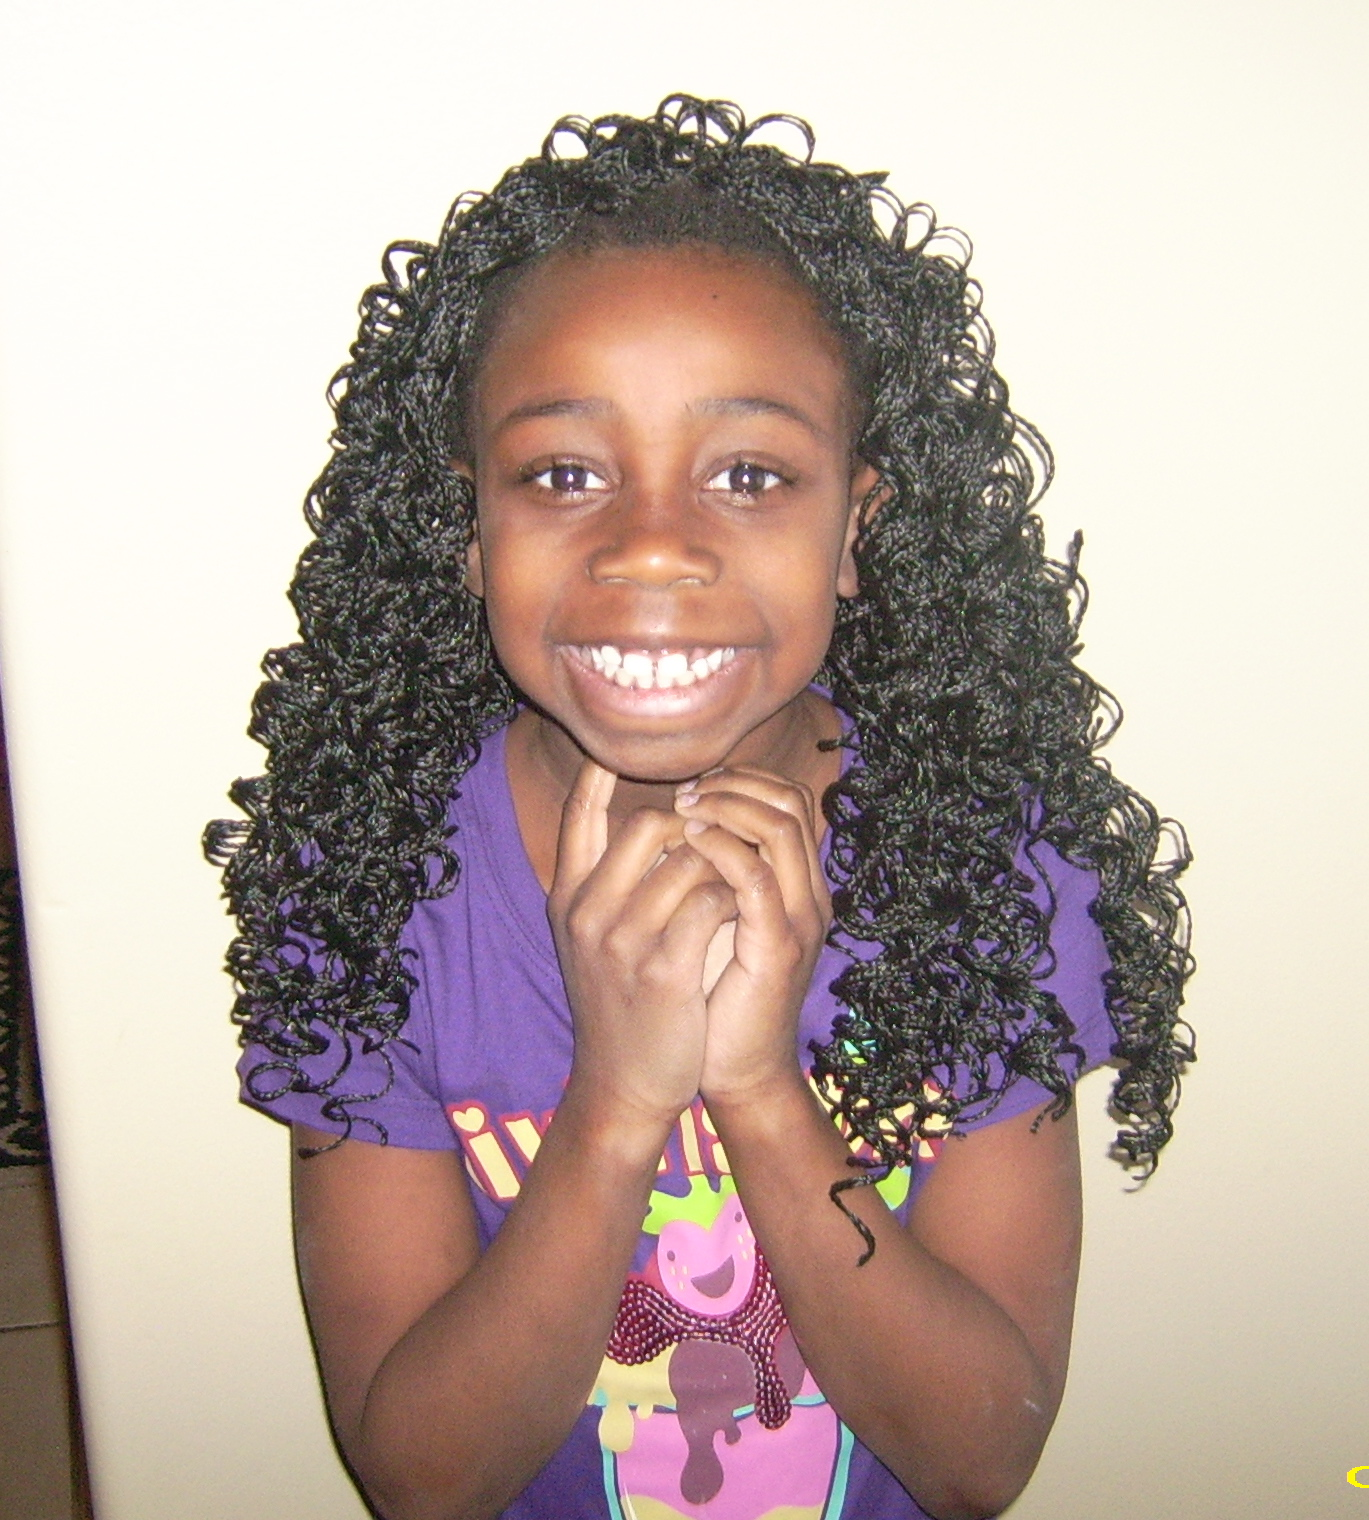 Black Weave Hairstyles with Braids for Kids